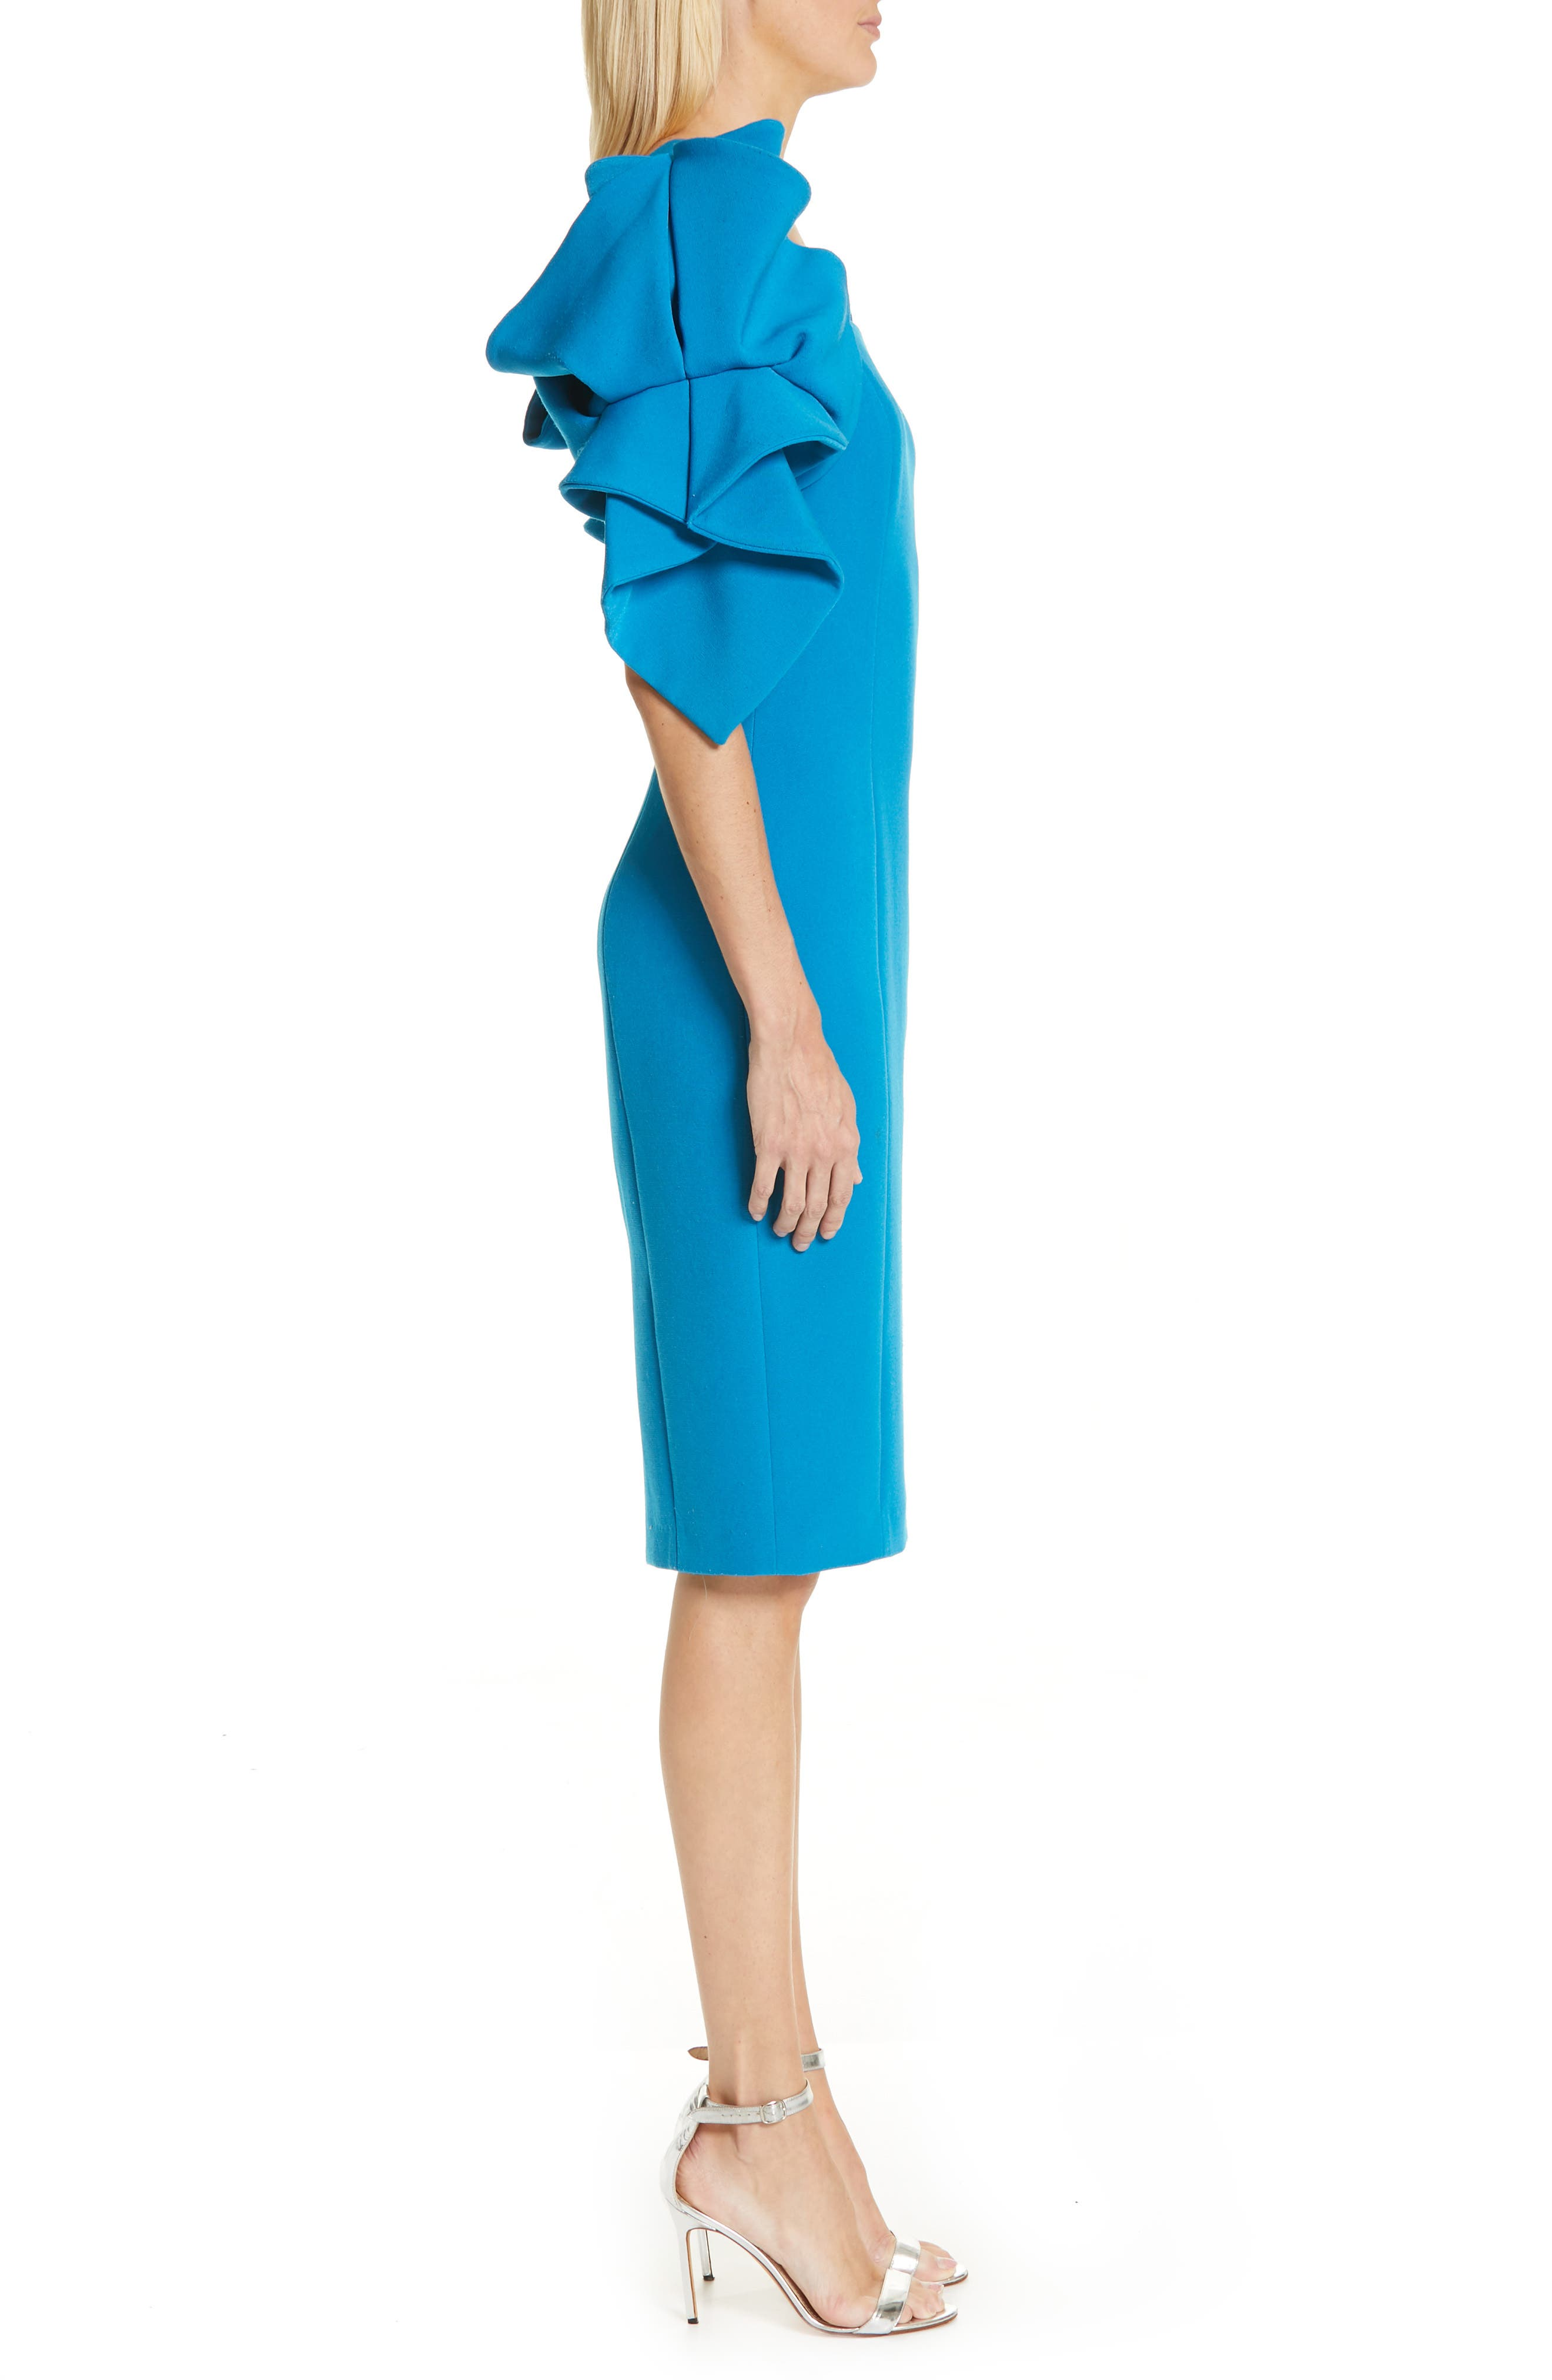 BADGLEY MISCHKA COLLECTION,                             Origami Sleeve Cocktail Dress,                             Alternate thumbnail 4, color,                             BRIGHT AQUA